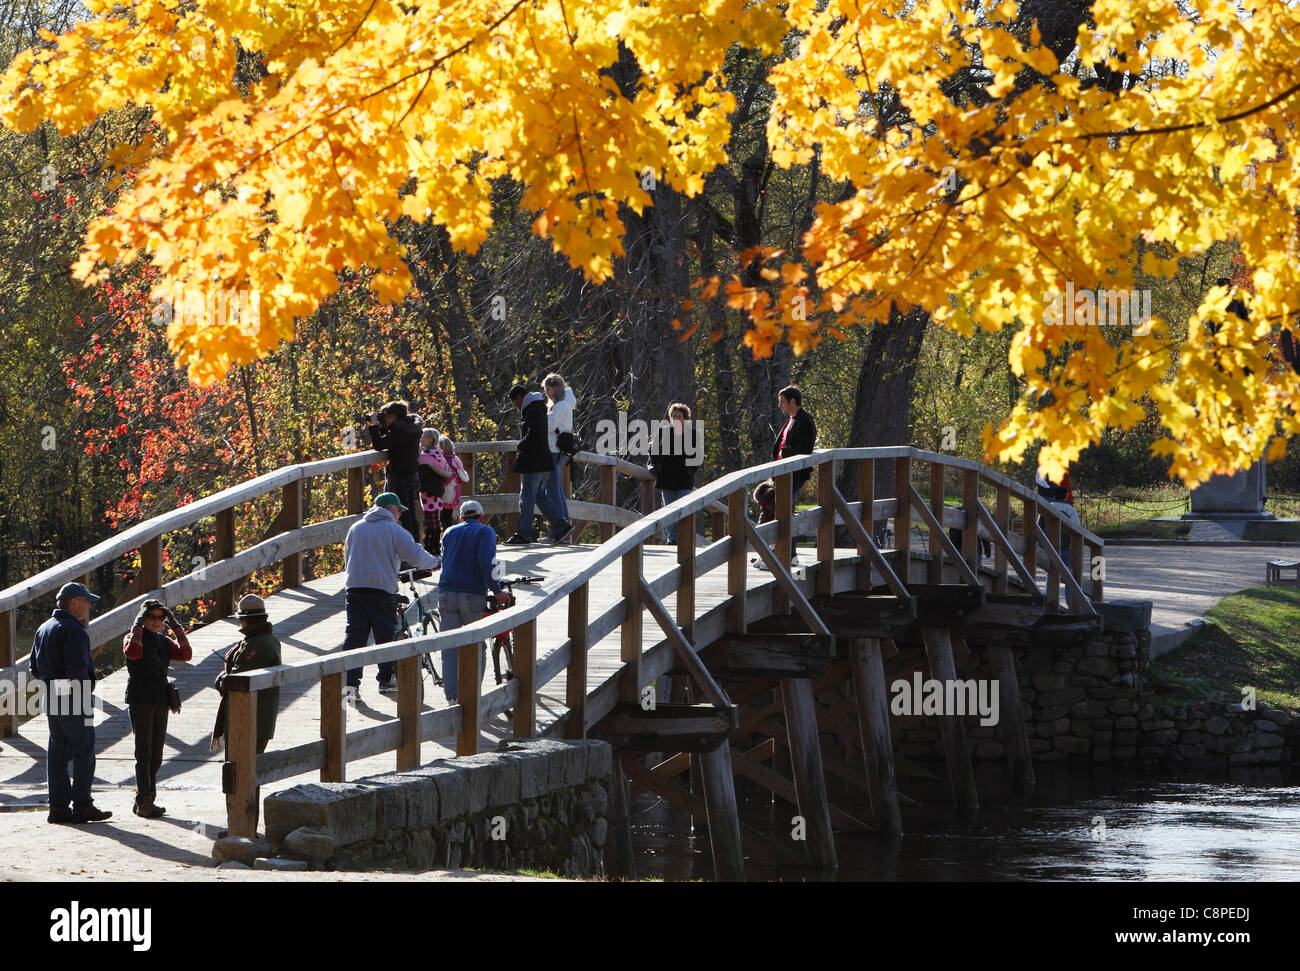 The North Bridge, Minute Man National Historical Park, Concord, Massachusetts, USA - Stock Image